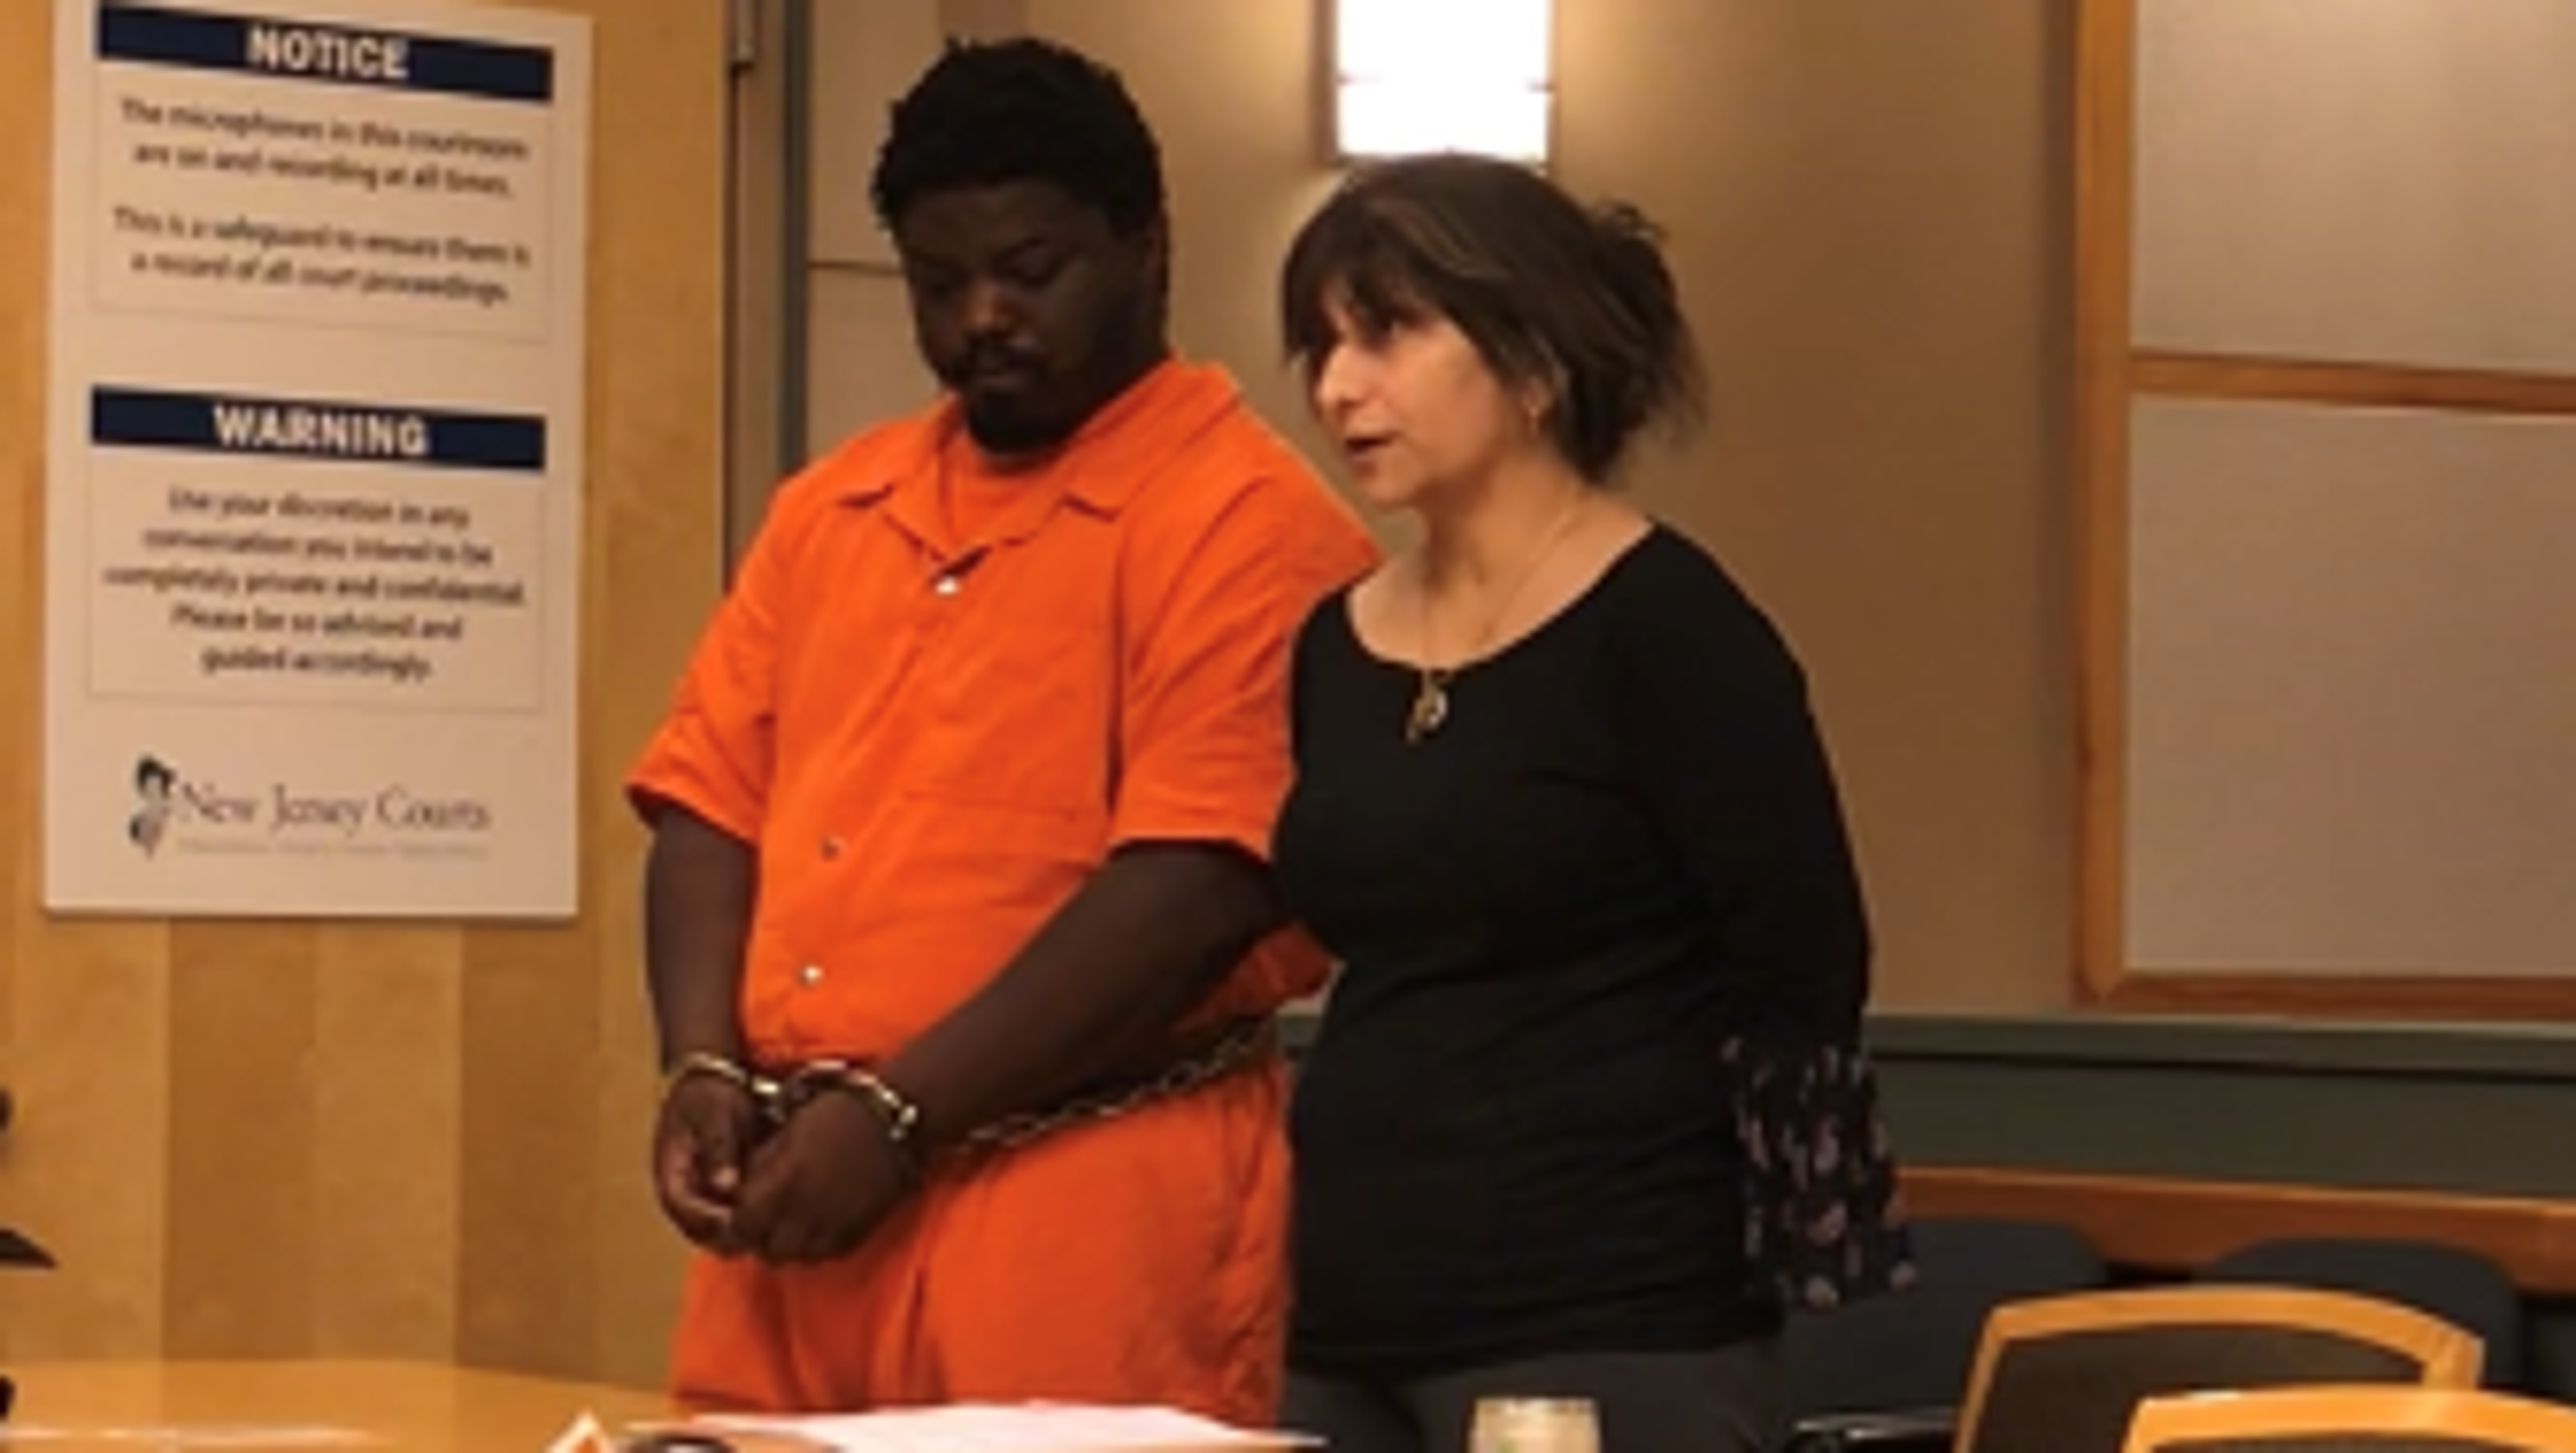 State judge sets Fairfield murder case hearings for August 6